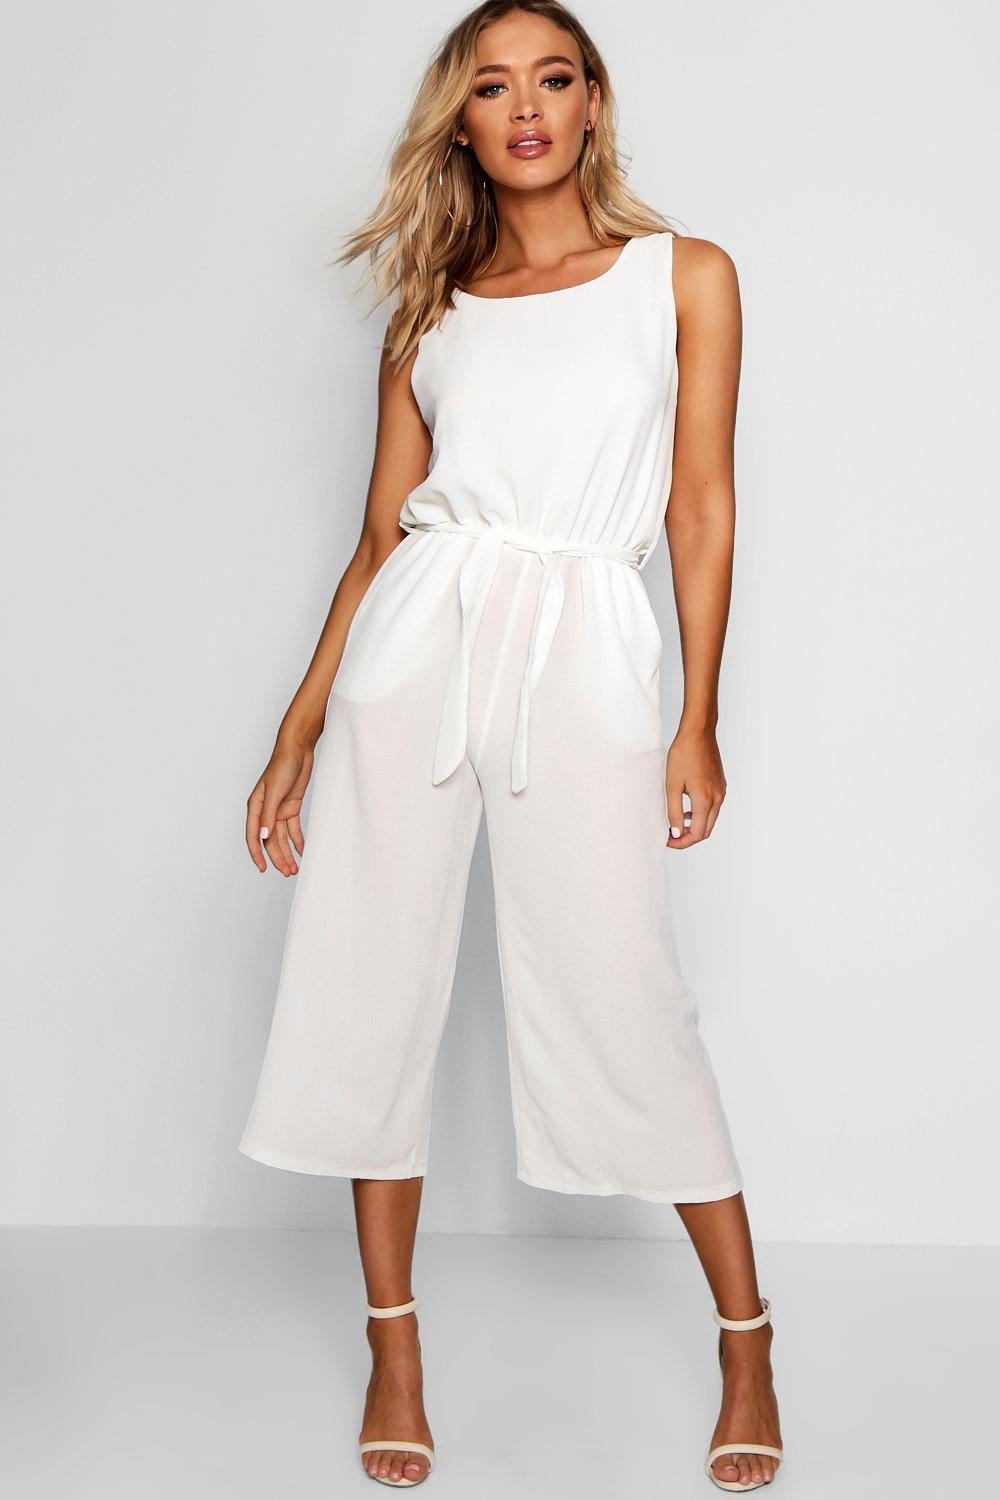 7851a415ea4 Culotte Jumpsuit. Hover to zoom